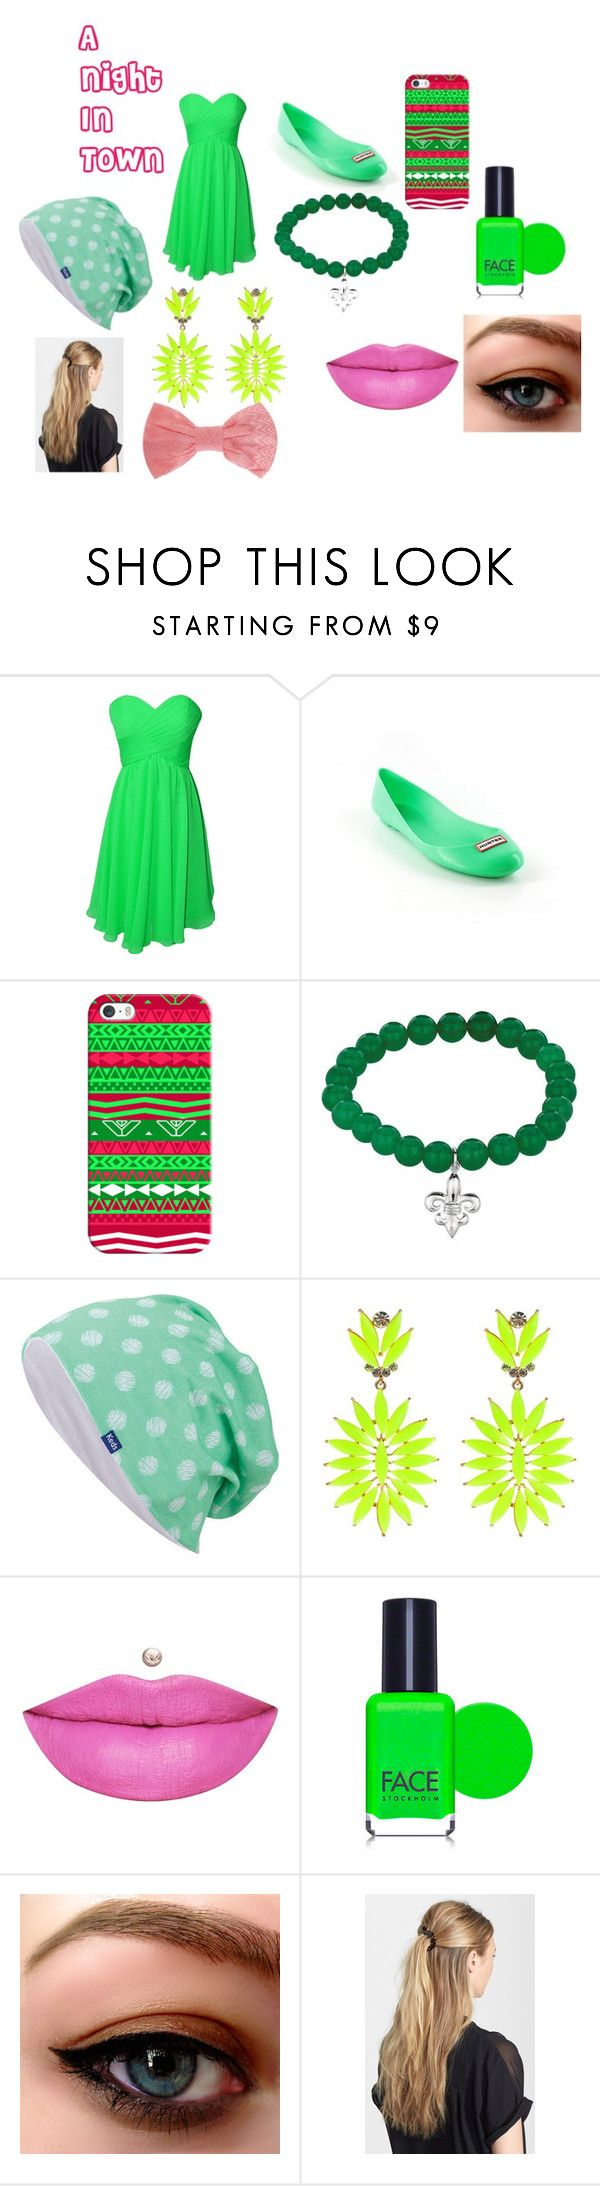 """""""Untitled #11"""" by zelda299 on Polyvore featuring beauty, Hunter, Casetify, Phillip Gavriel, Keds, Lady Fox, Anastasia Beverly Hills, FACE Stockholm, France Luxe and Missoni"""